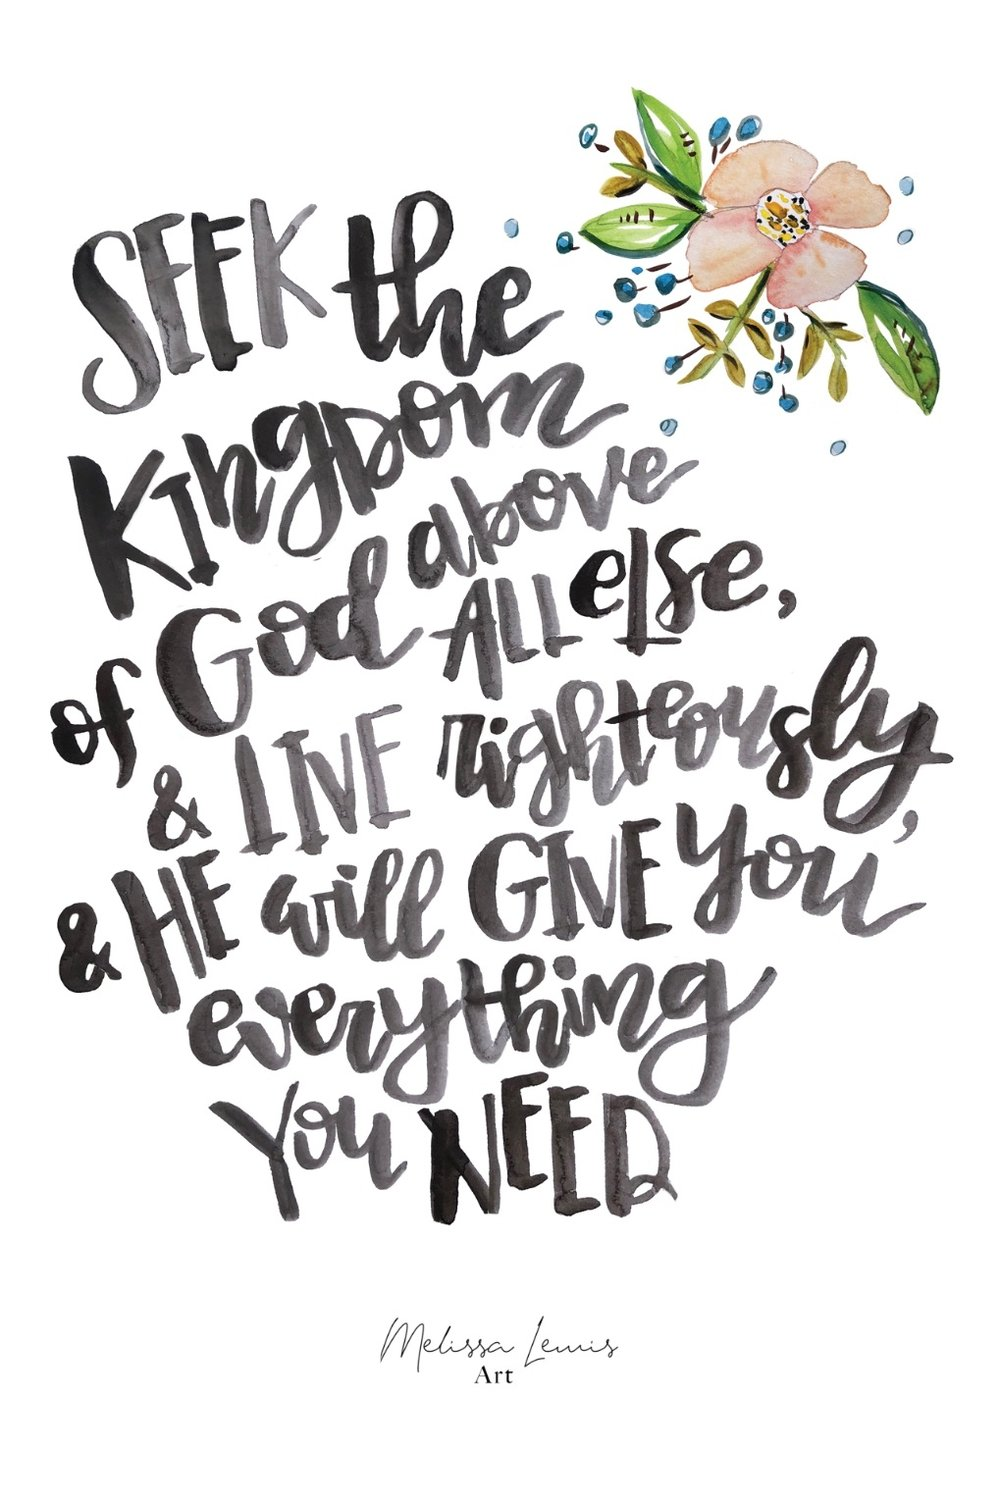 Melissa Lewis Art Hand Lettered Scripture Free iPhone Wallpaper.